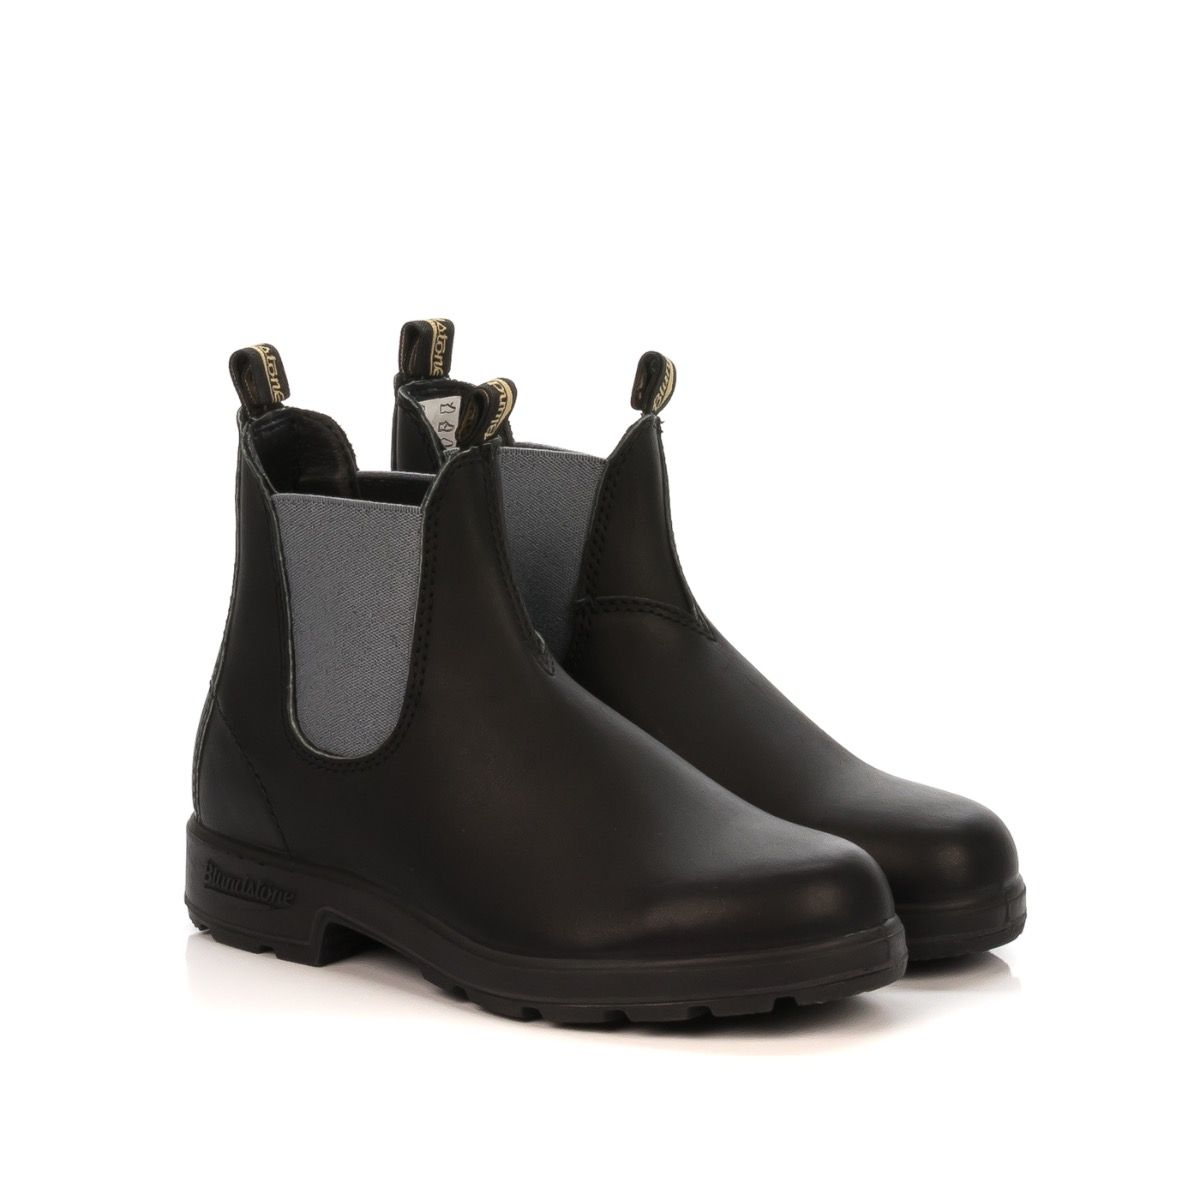 separation shoes 0caa1 a1a9d BLUNDSTONE STIVALETTO BEATLES DONNA BCCAL0152-577 PELLE NERO ELASTICO GRIGIO